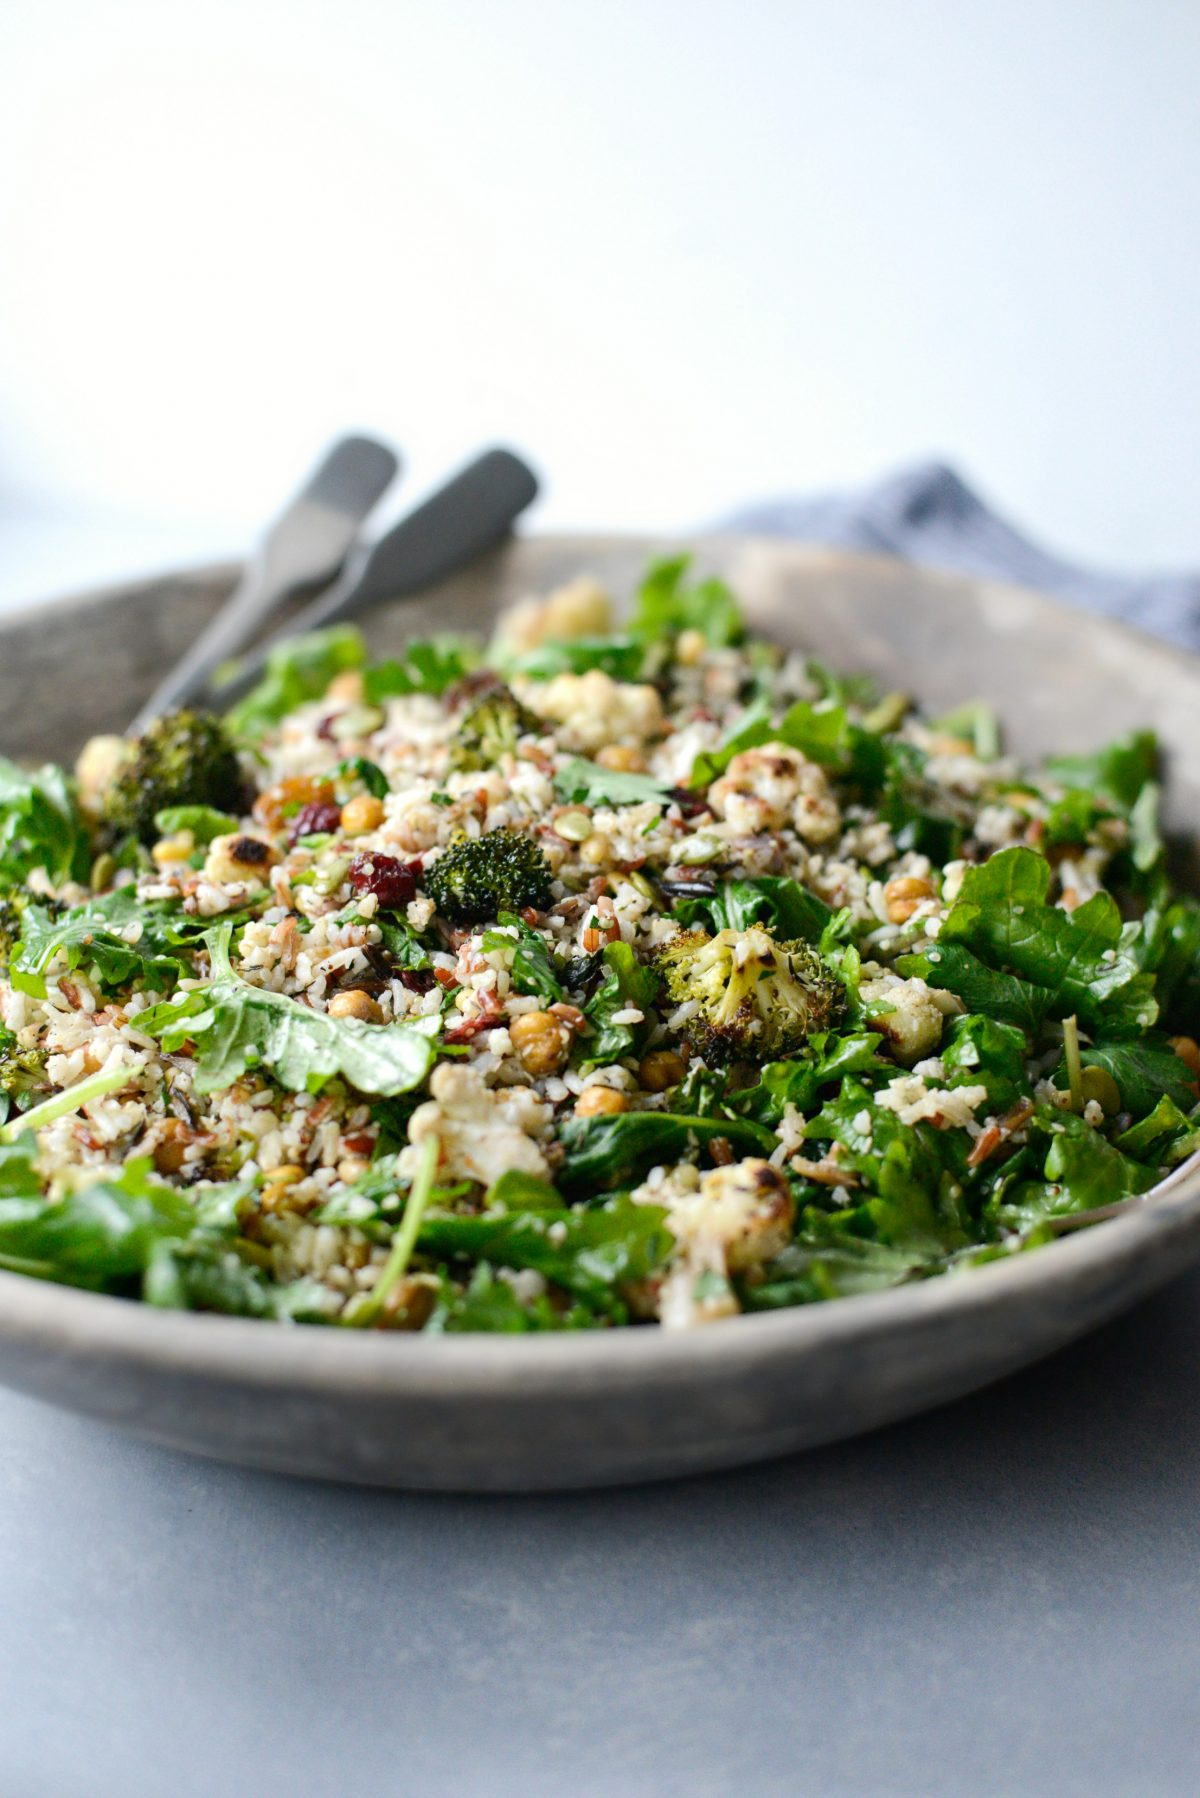 Roasted Broccoli Cauliflower Kale Salad l SimplyScratch.com